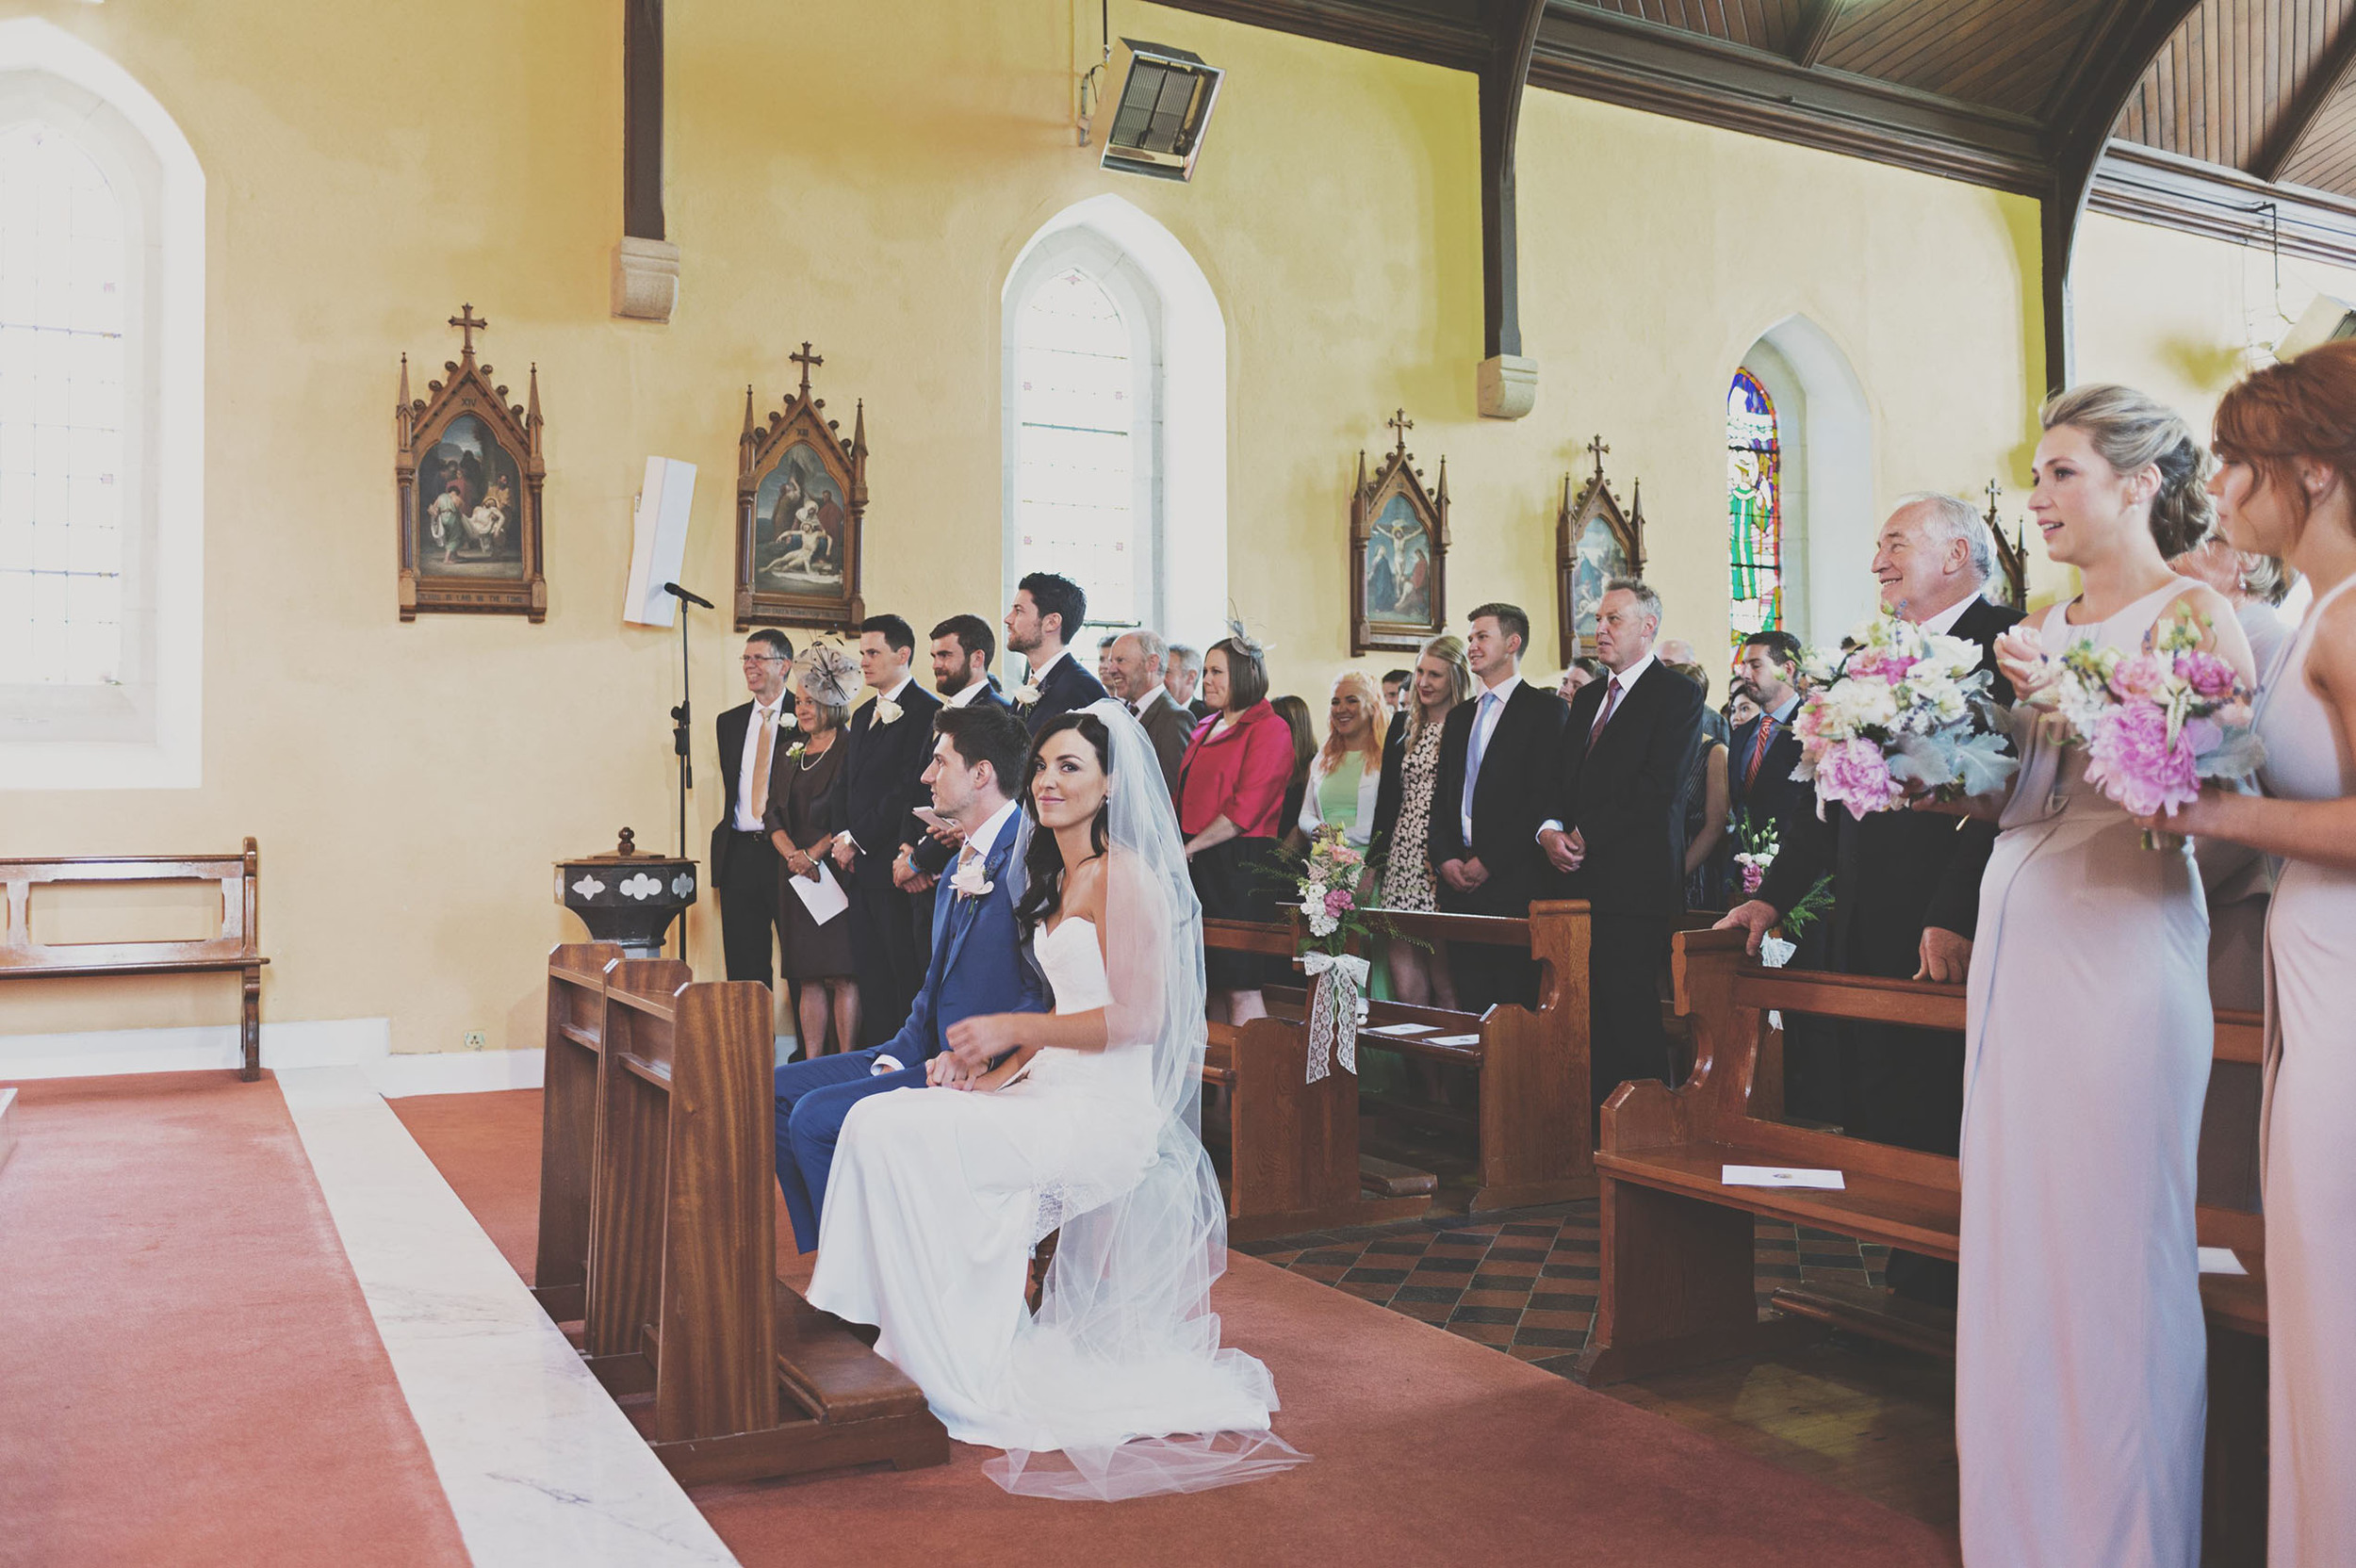 Julie & Matt's Seafield Wedding by Studio33weddings 040.jpg